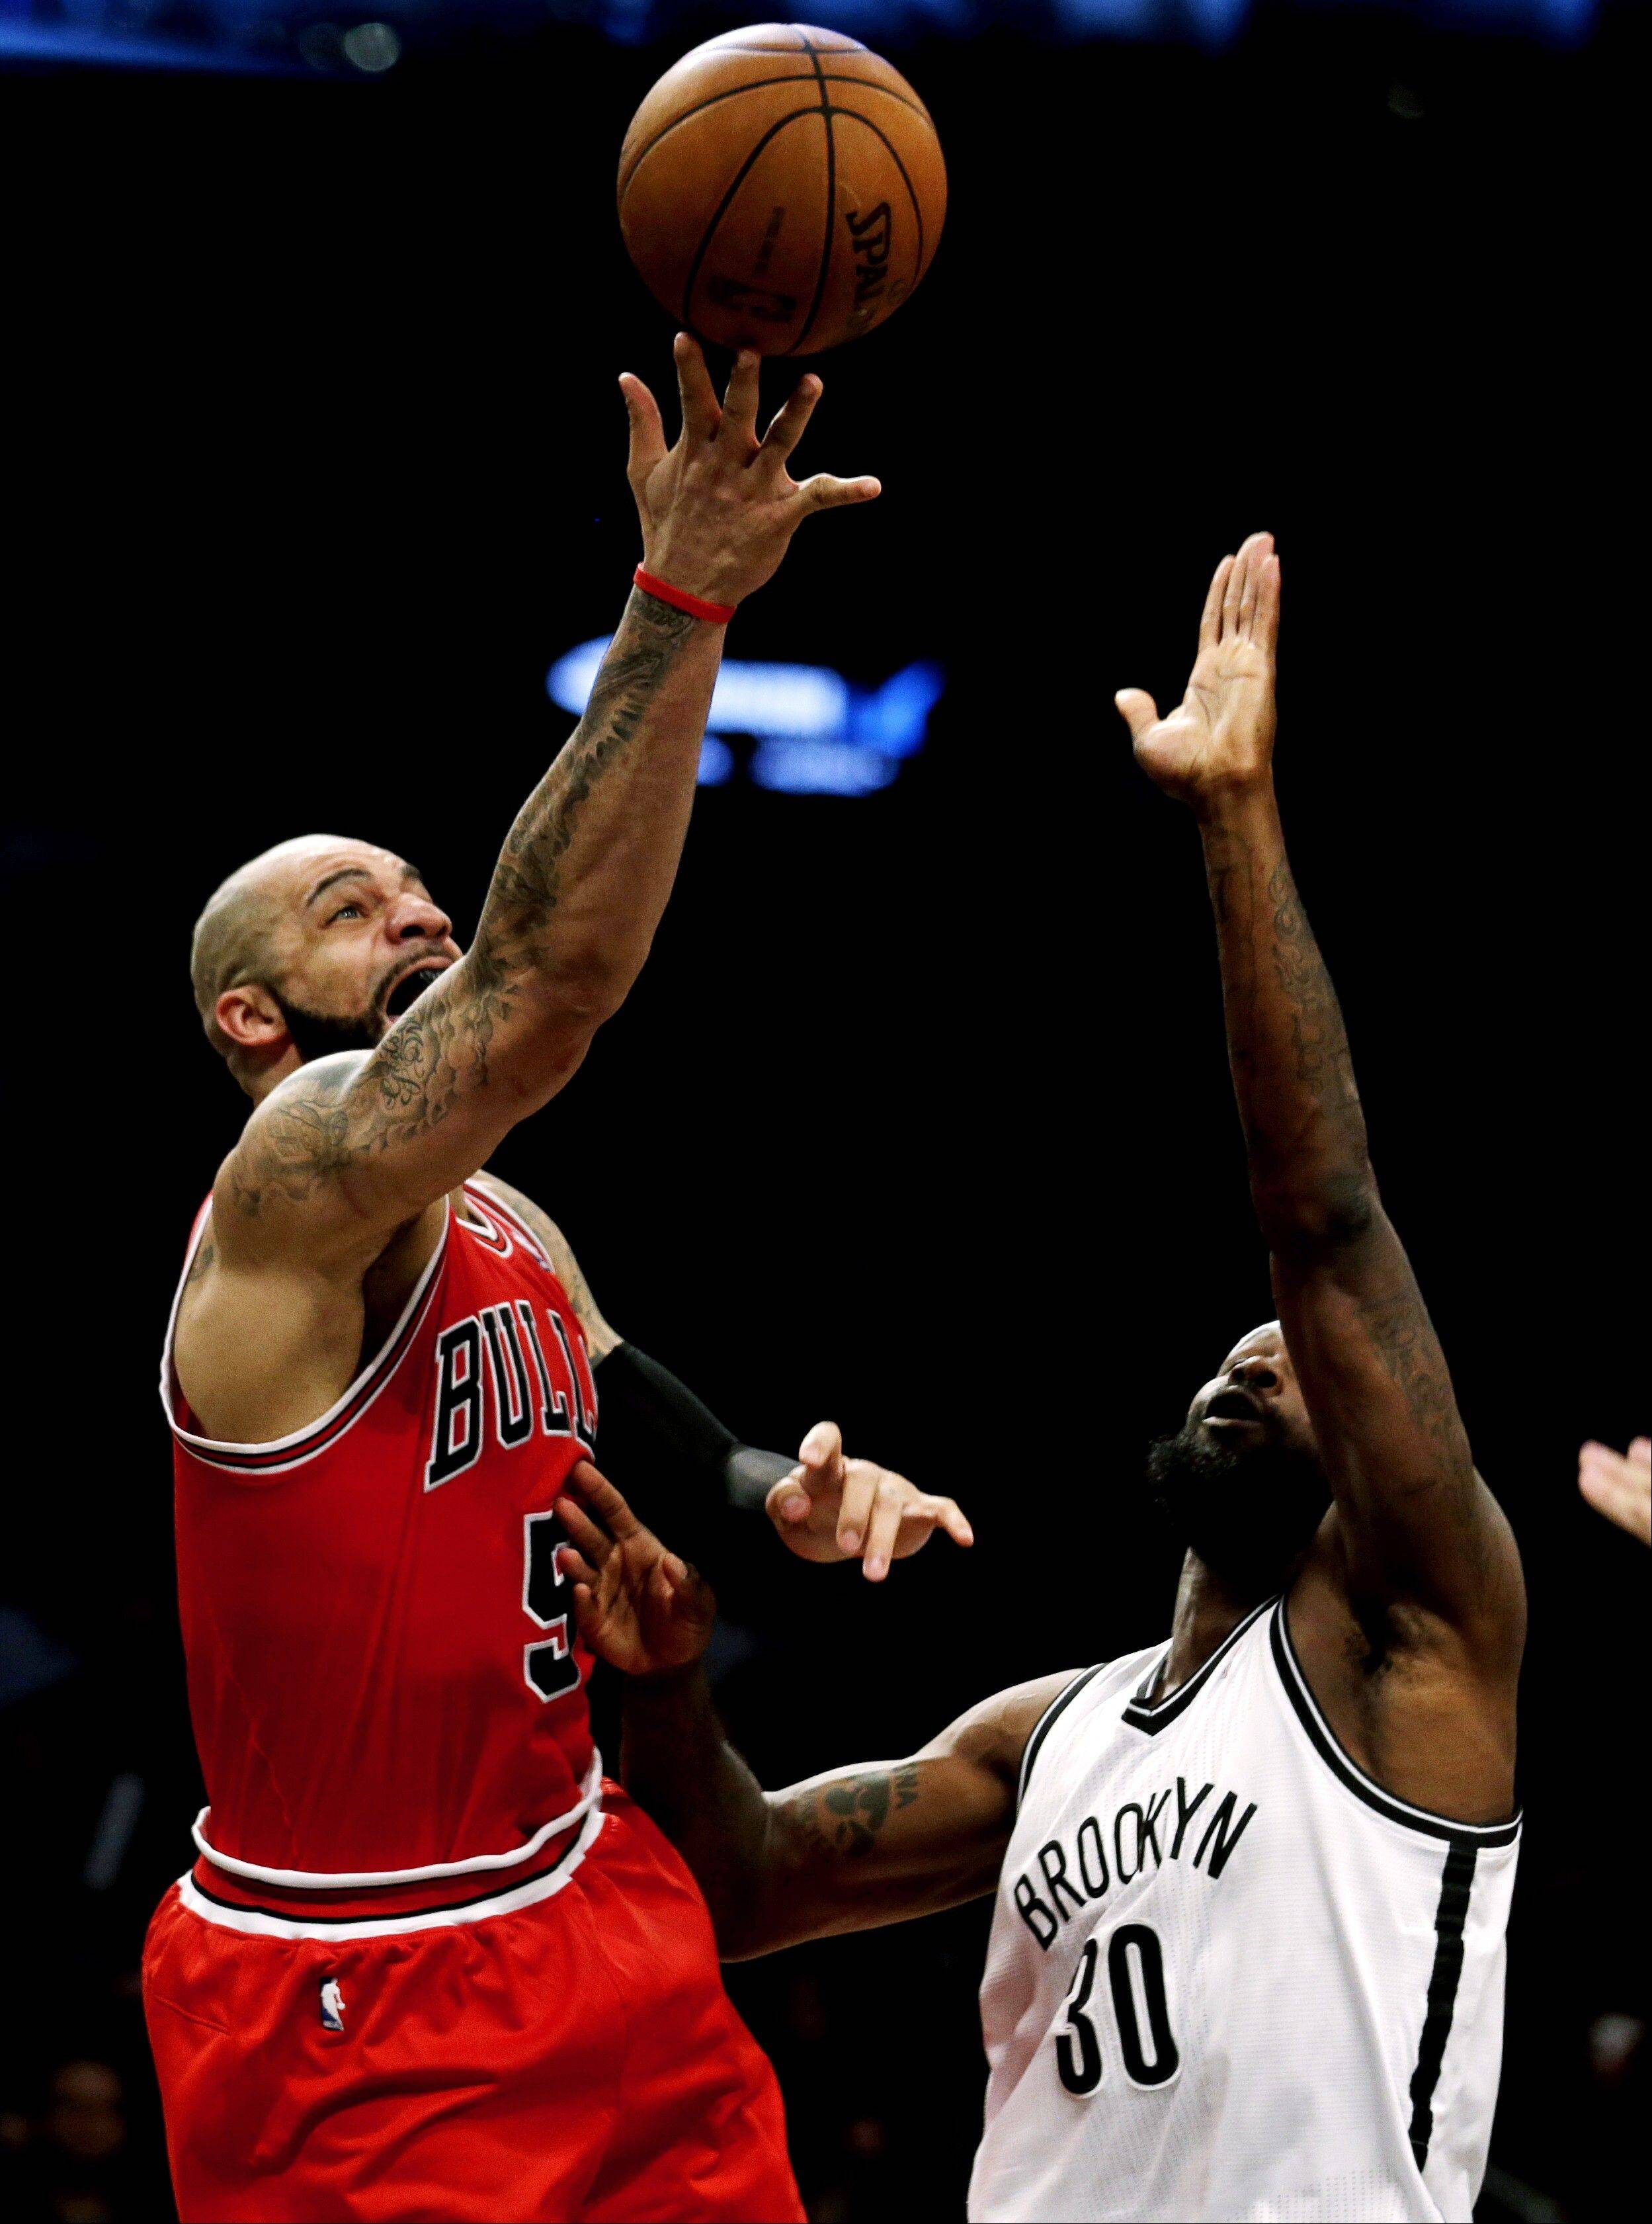 Chicago Bulls forward Carlos Boozer, left, shoots against Brooklyn Nets' Reggie Evans during the second half in Game 7 of their first-round NBA basketball playoff series in New York, Saturday, May 4, 2013.